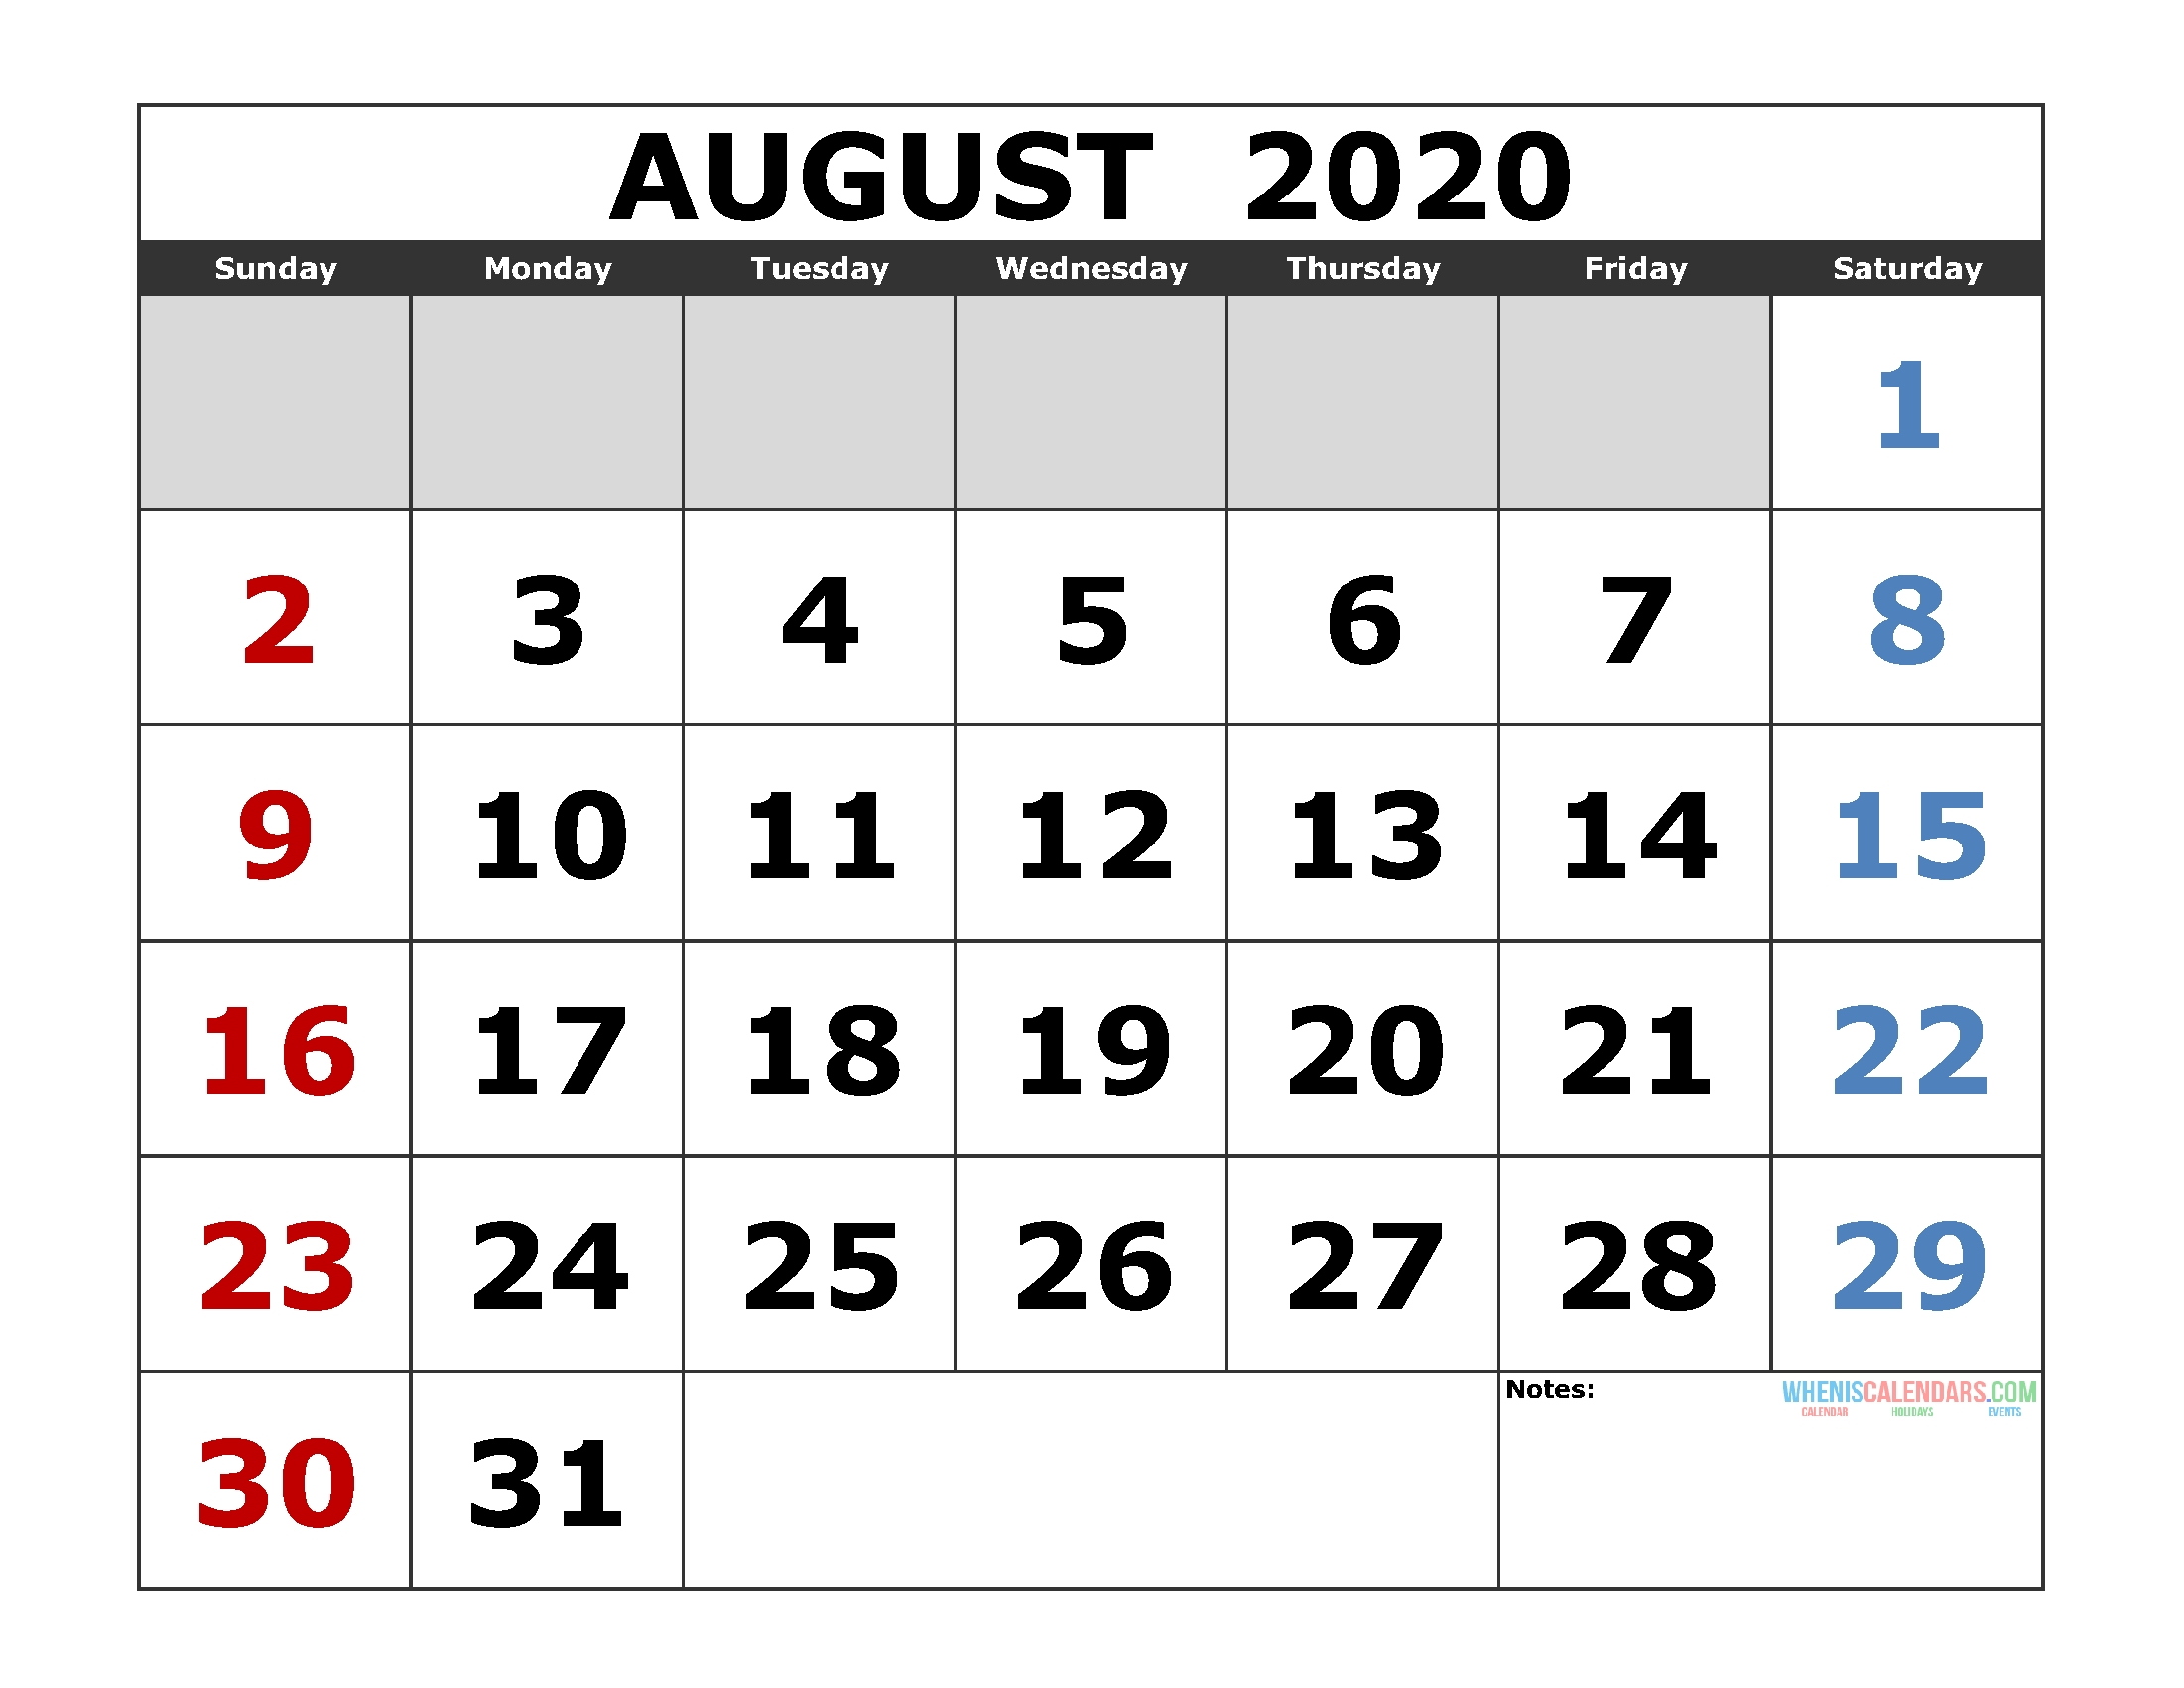 August 2020 Printable Calendar Template Excel, Pdf, Image [Us_Blank Calendar August 2020 Pdf